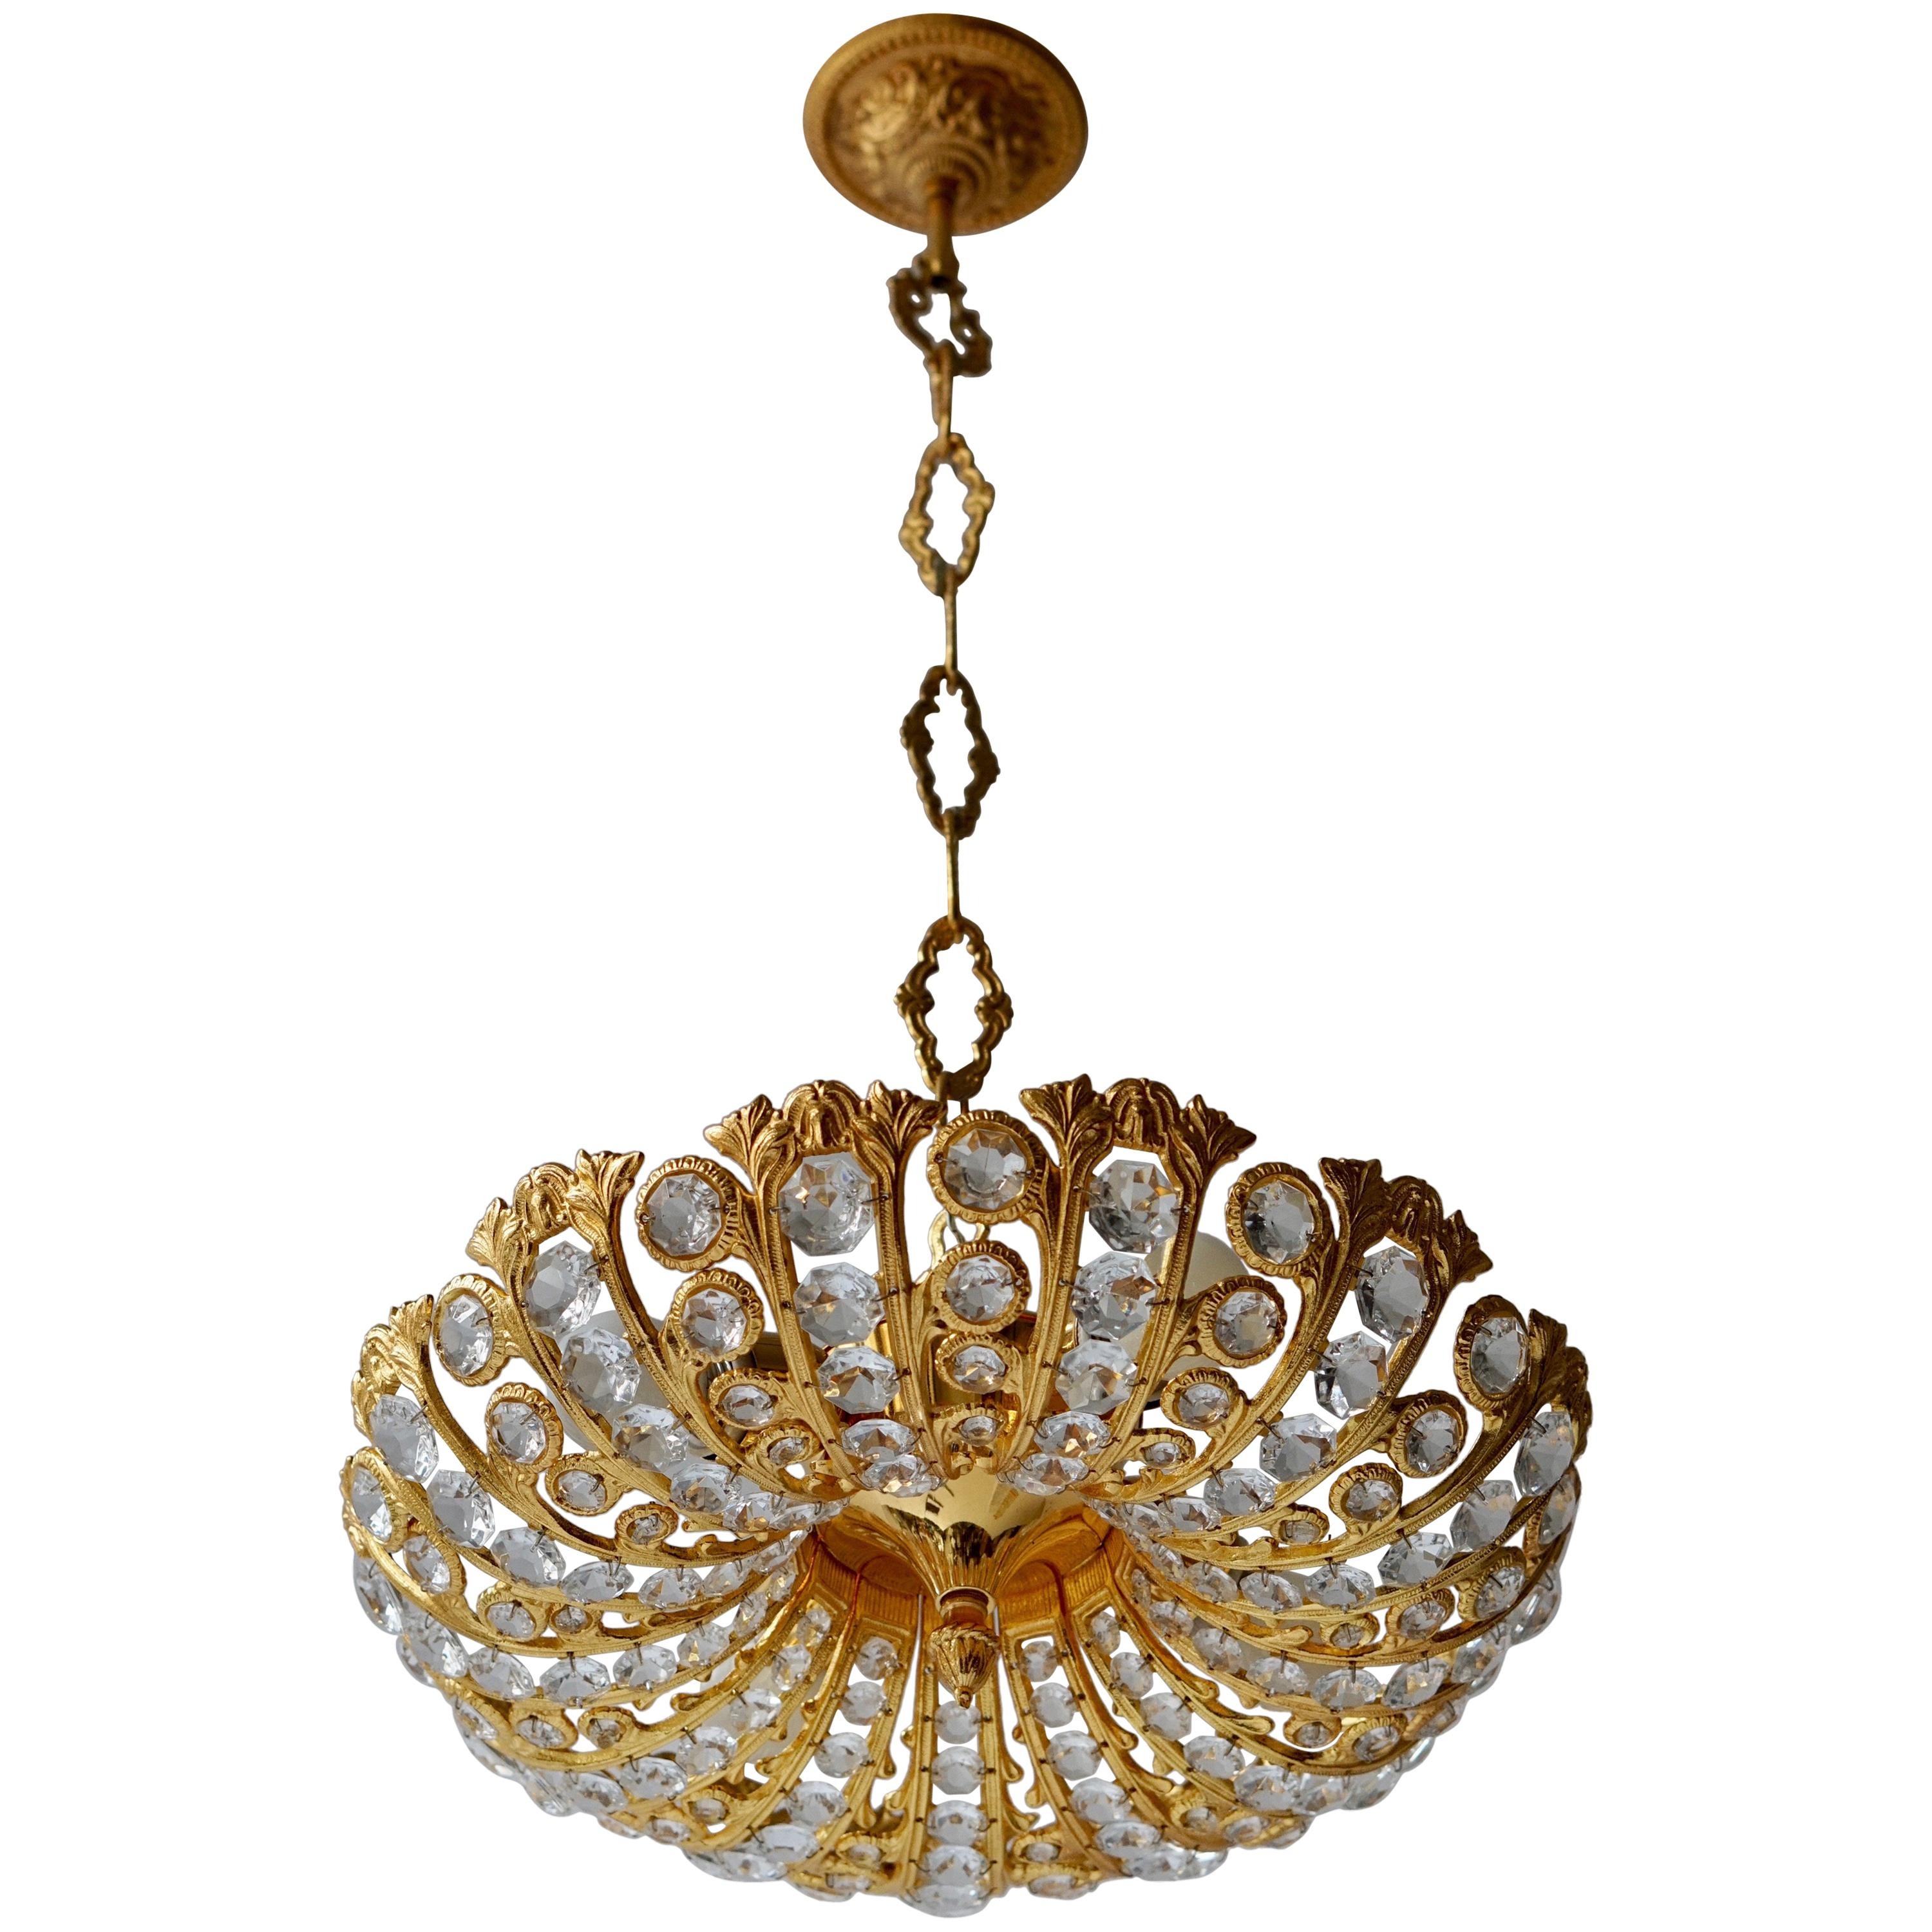 Hollywood Regency Crystal and Gilded Chandelier by Palwa